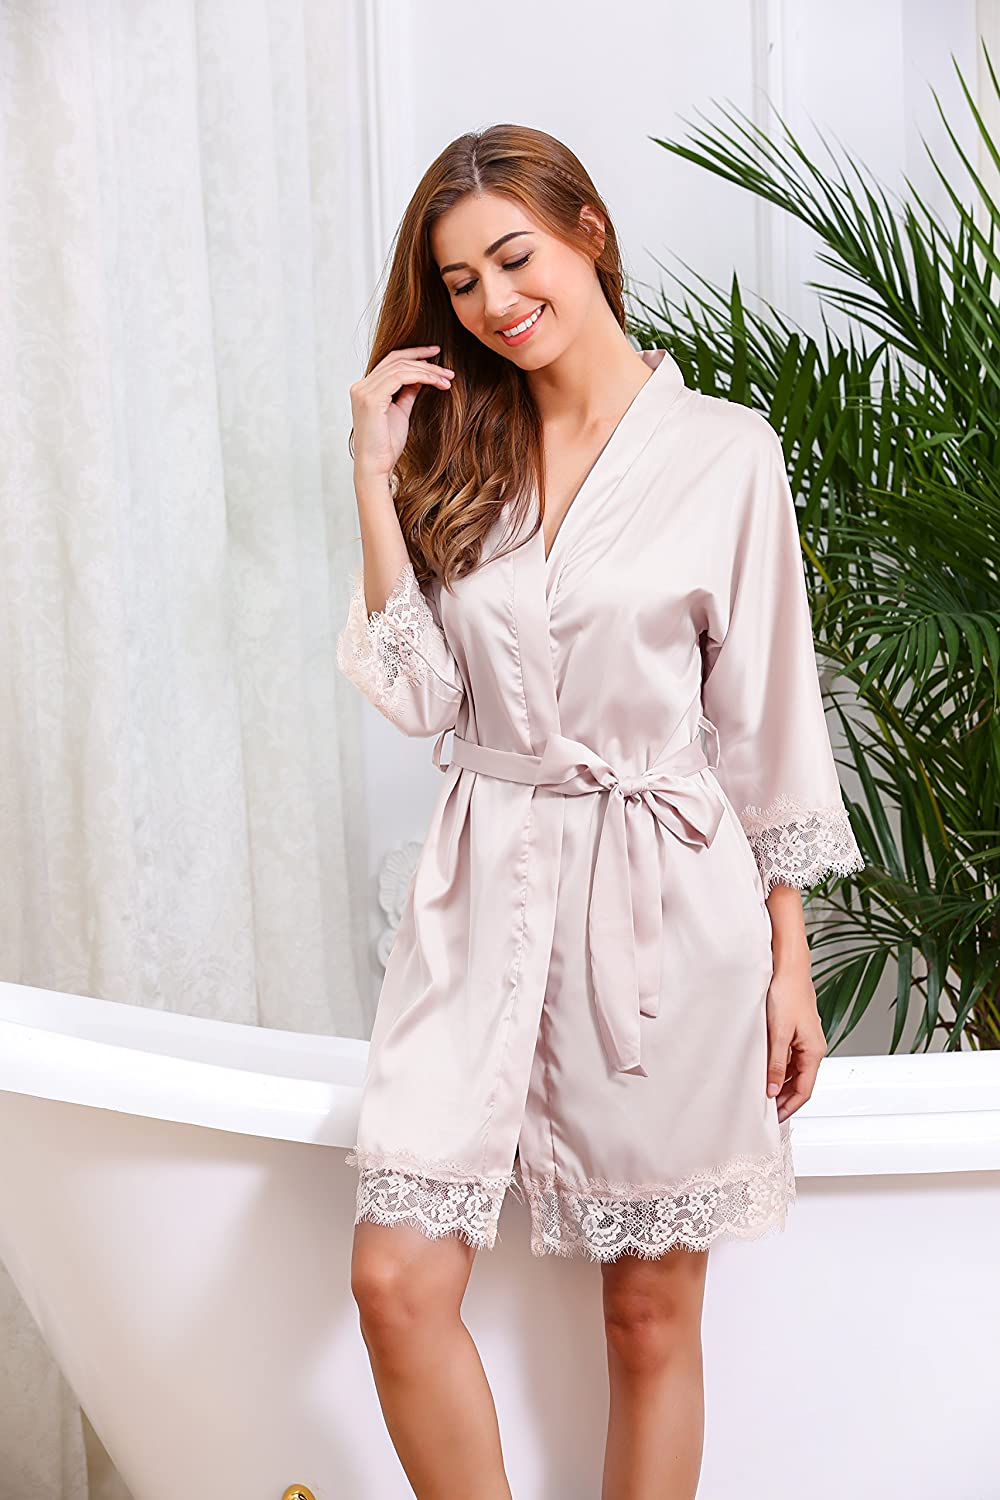 4878af9161 Hotouch Womens Bathrobes Short Kimono Robe Bridesmaids Satin Sleepwear  Silky Lace Trim Lingerie with Oblique V